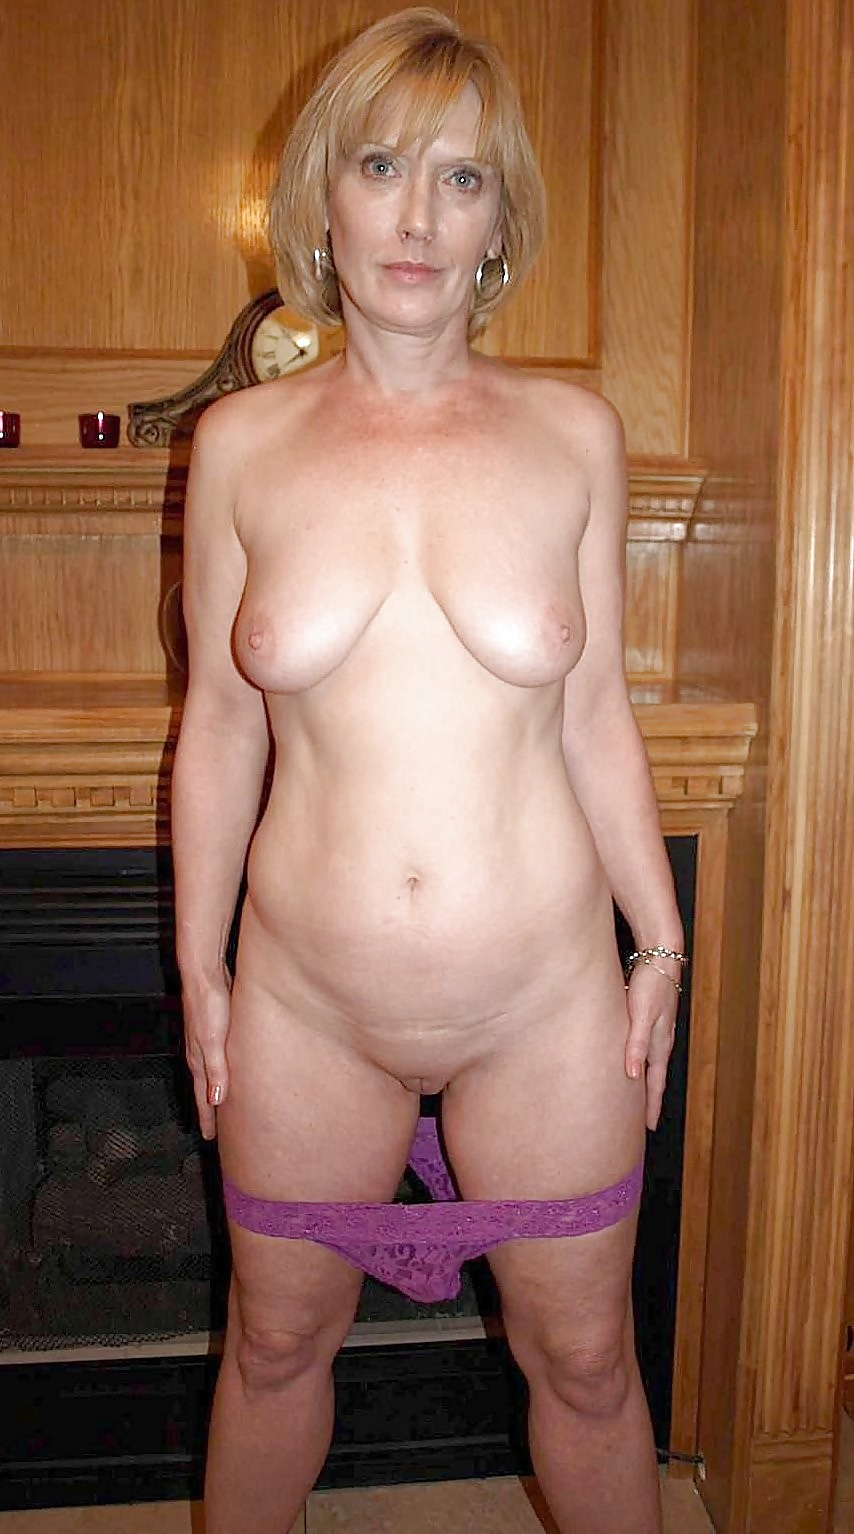 Beautiful middle aged nude ladies, free porn photos of young adults